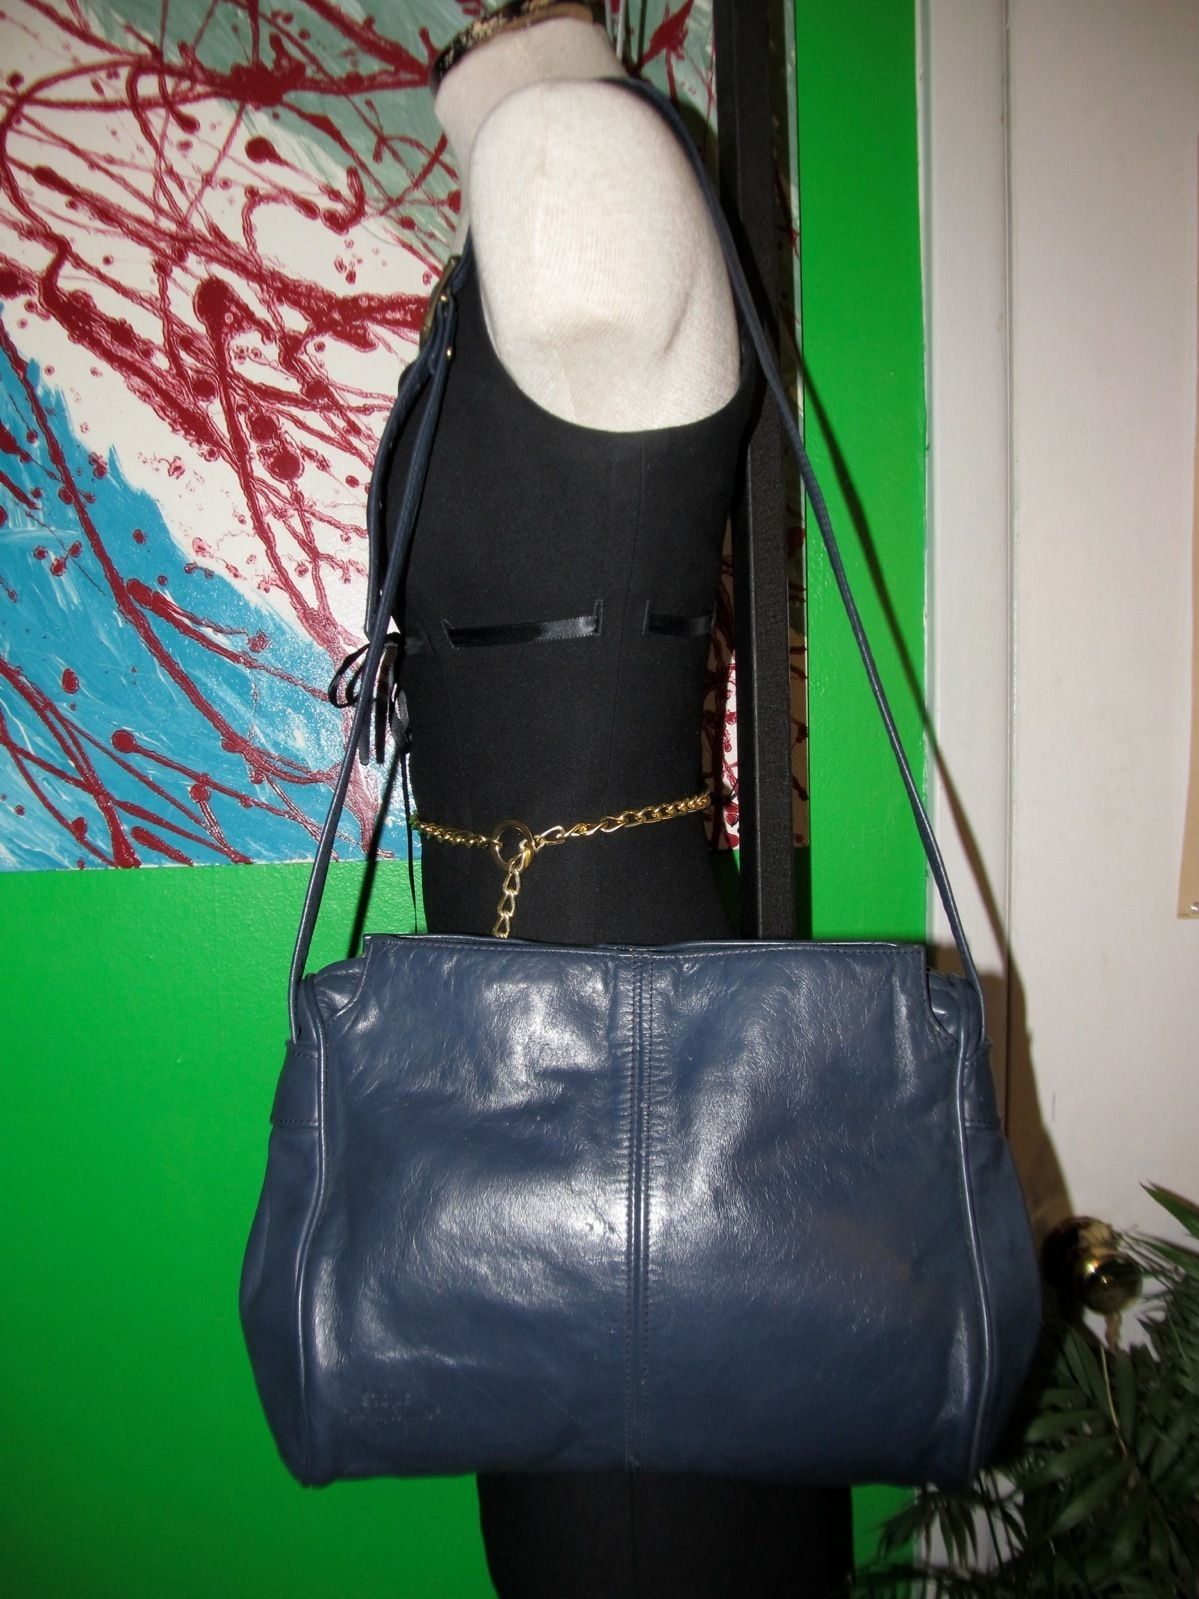 Navy Blue Leather Stone Mountain Handbag Shoulder Bag Purse Tote Ebay Handbags